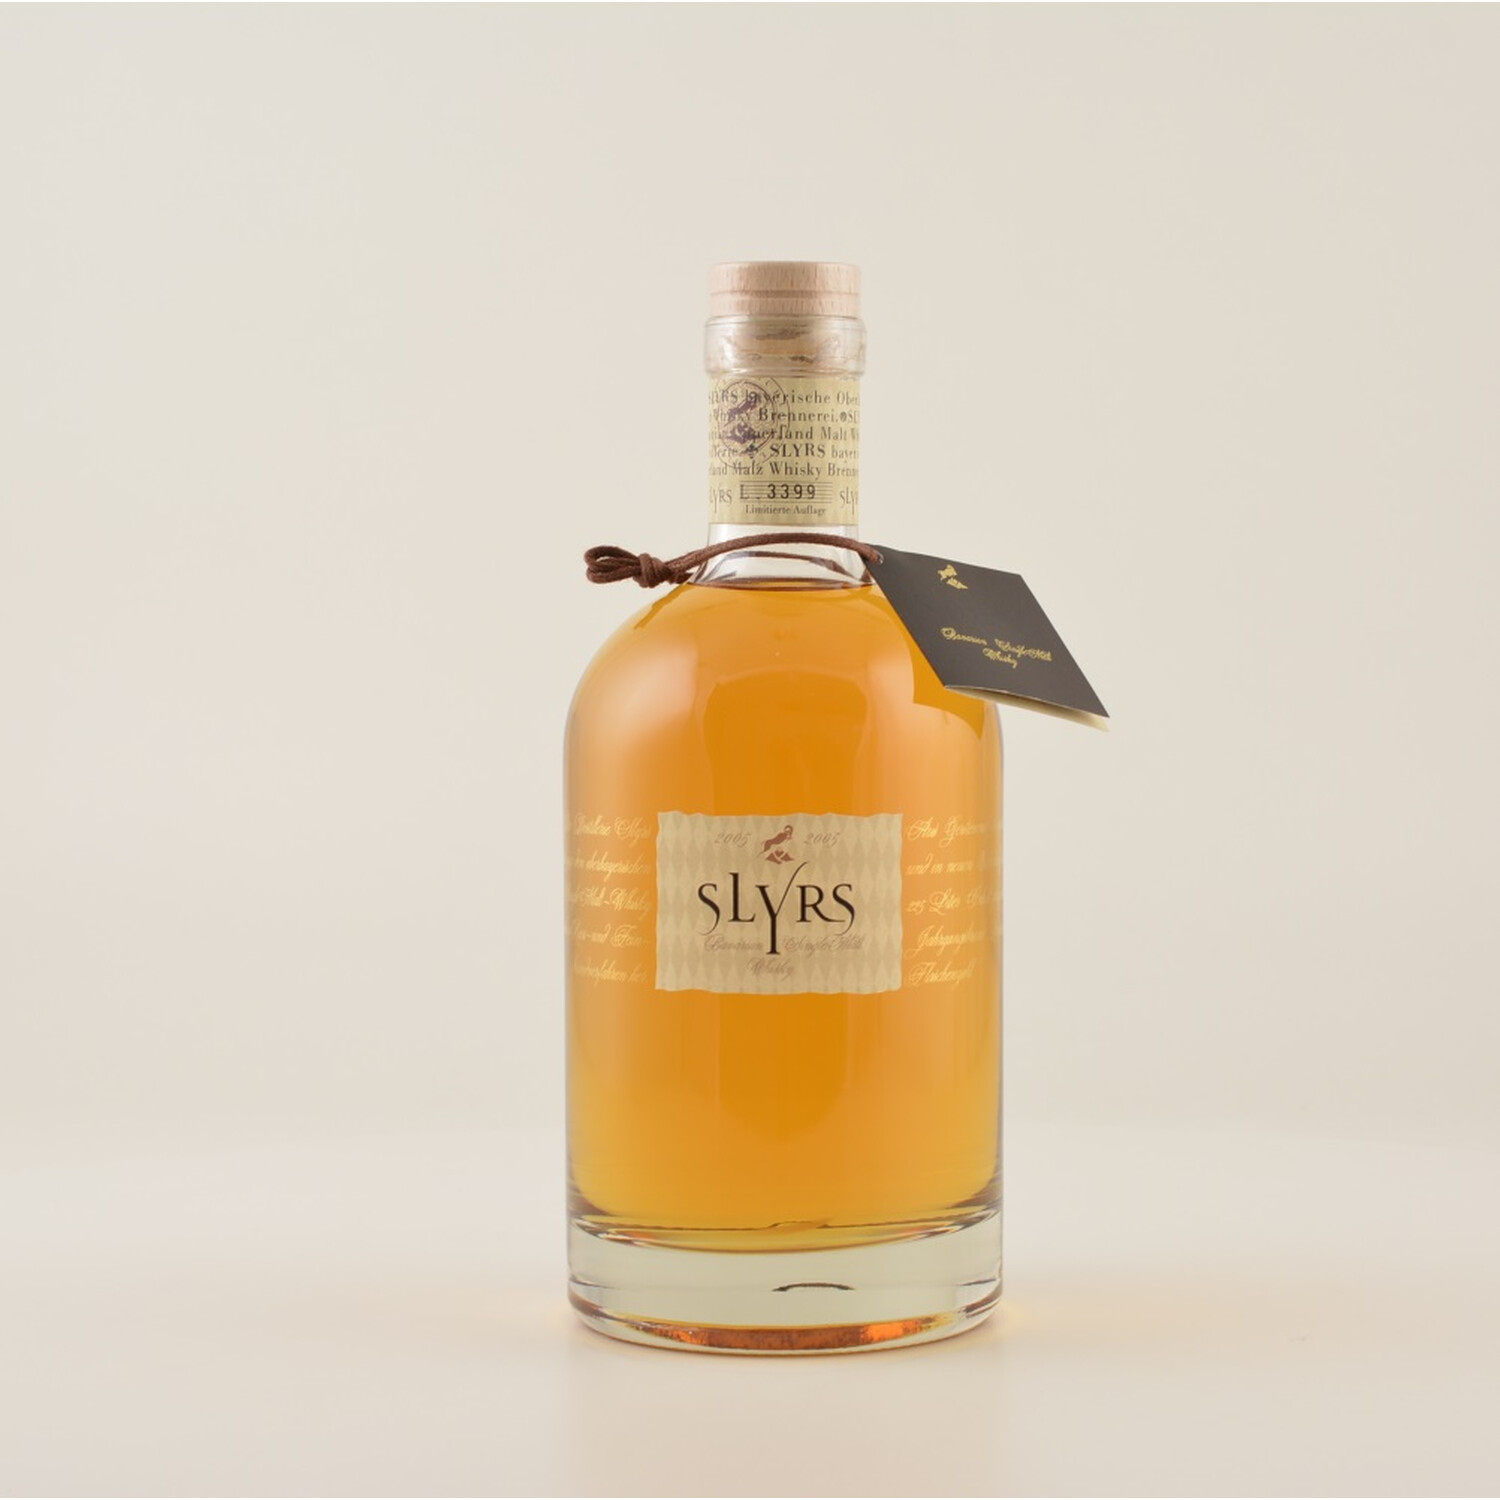 Slyrs - Bavarian Single Malt Whisky